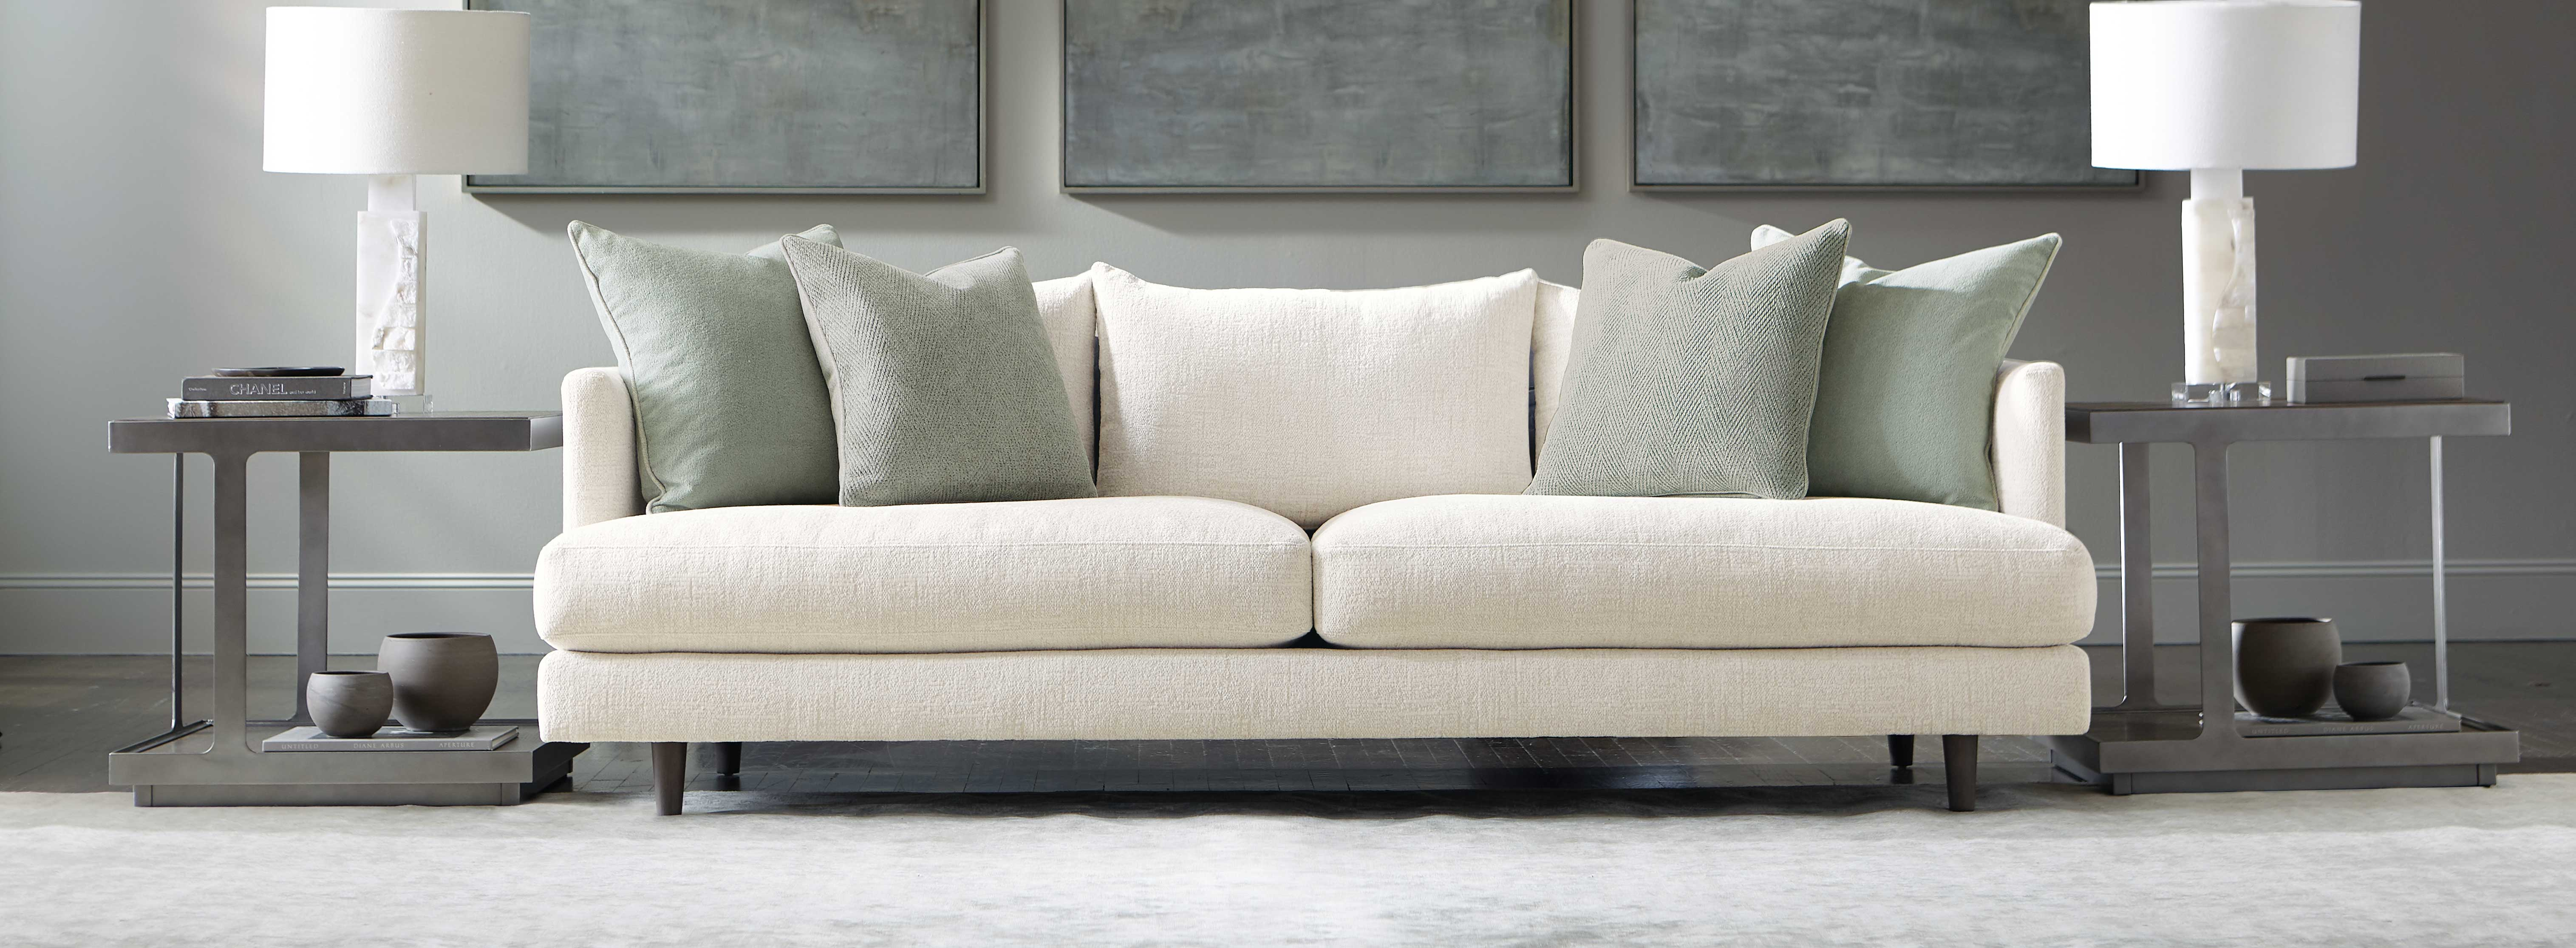 The value of a beautiful living room isn't only about price. It's the sum of all parts: quality, comfort, durability and beauty. Click to shop Bernhardt Furniture